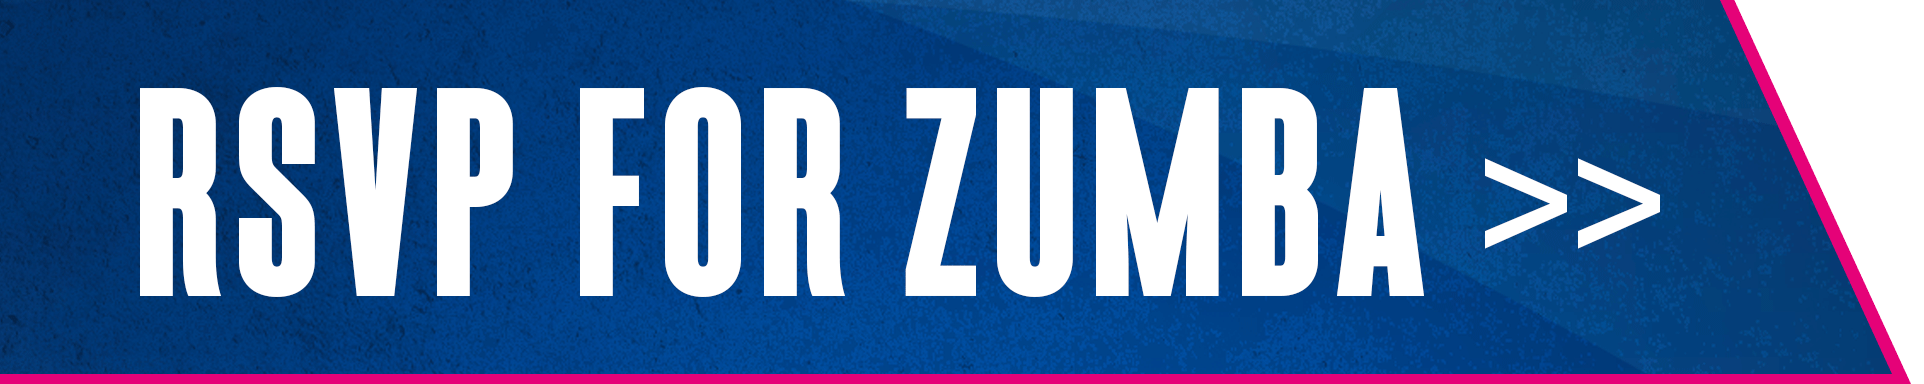 RSVP for Zumba